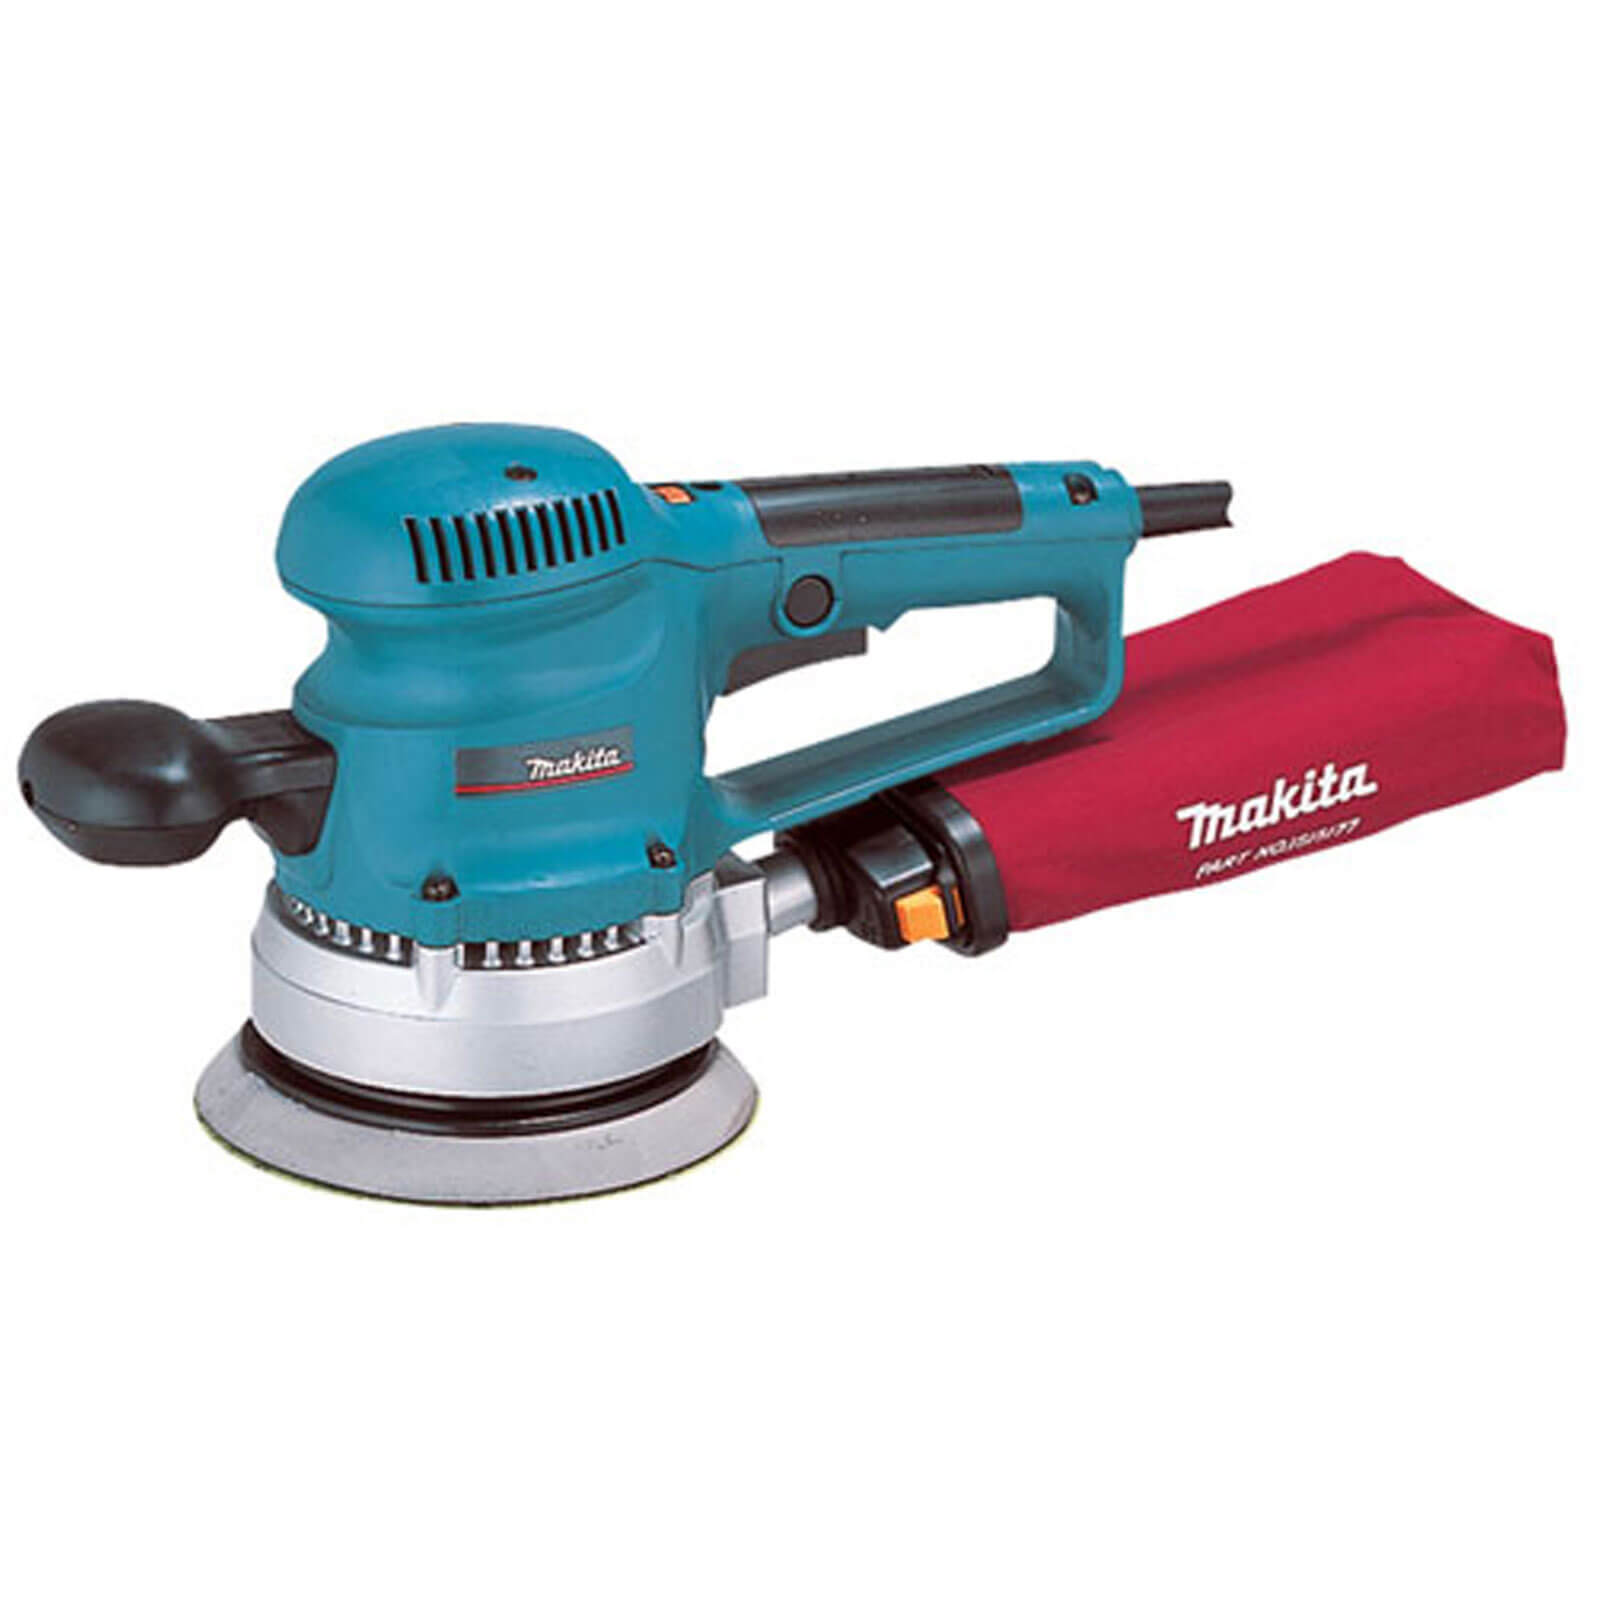 Image of Makita BO6030 Random Orbit Sander with Variable Speed 150mm Disc 110v